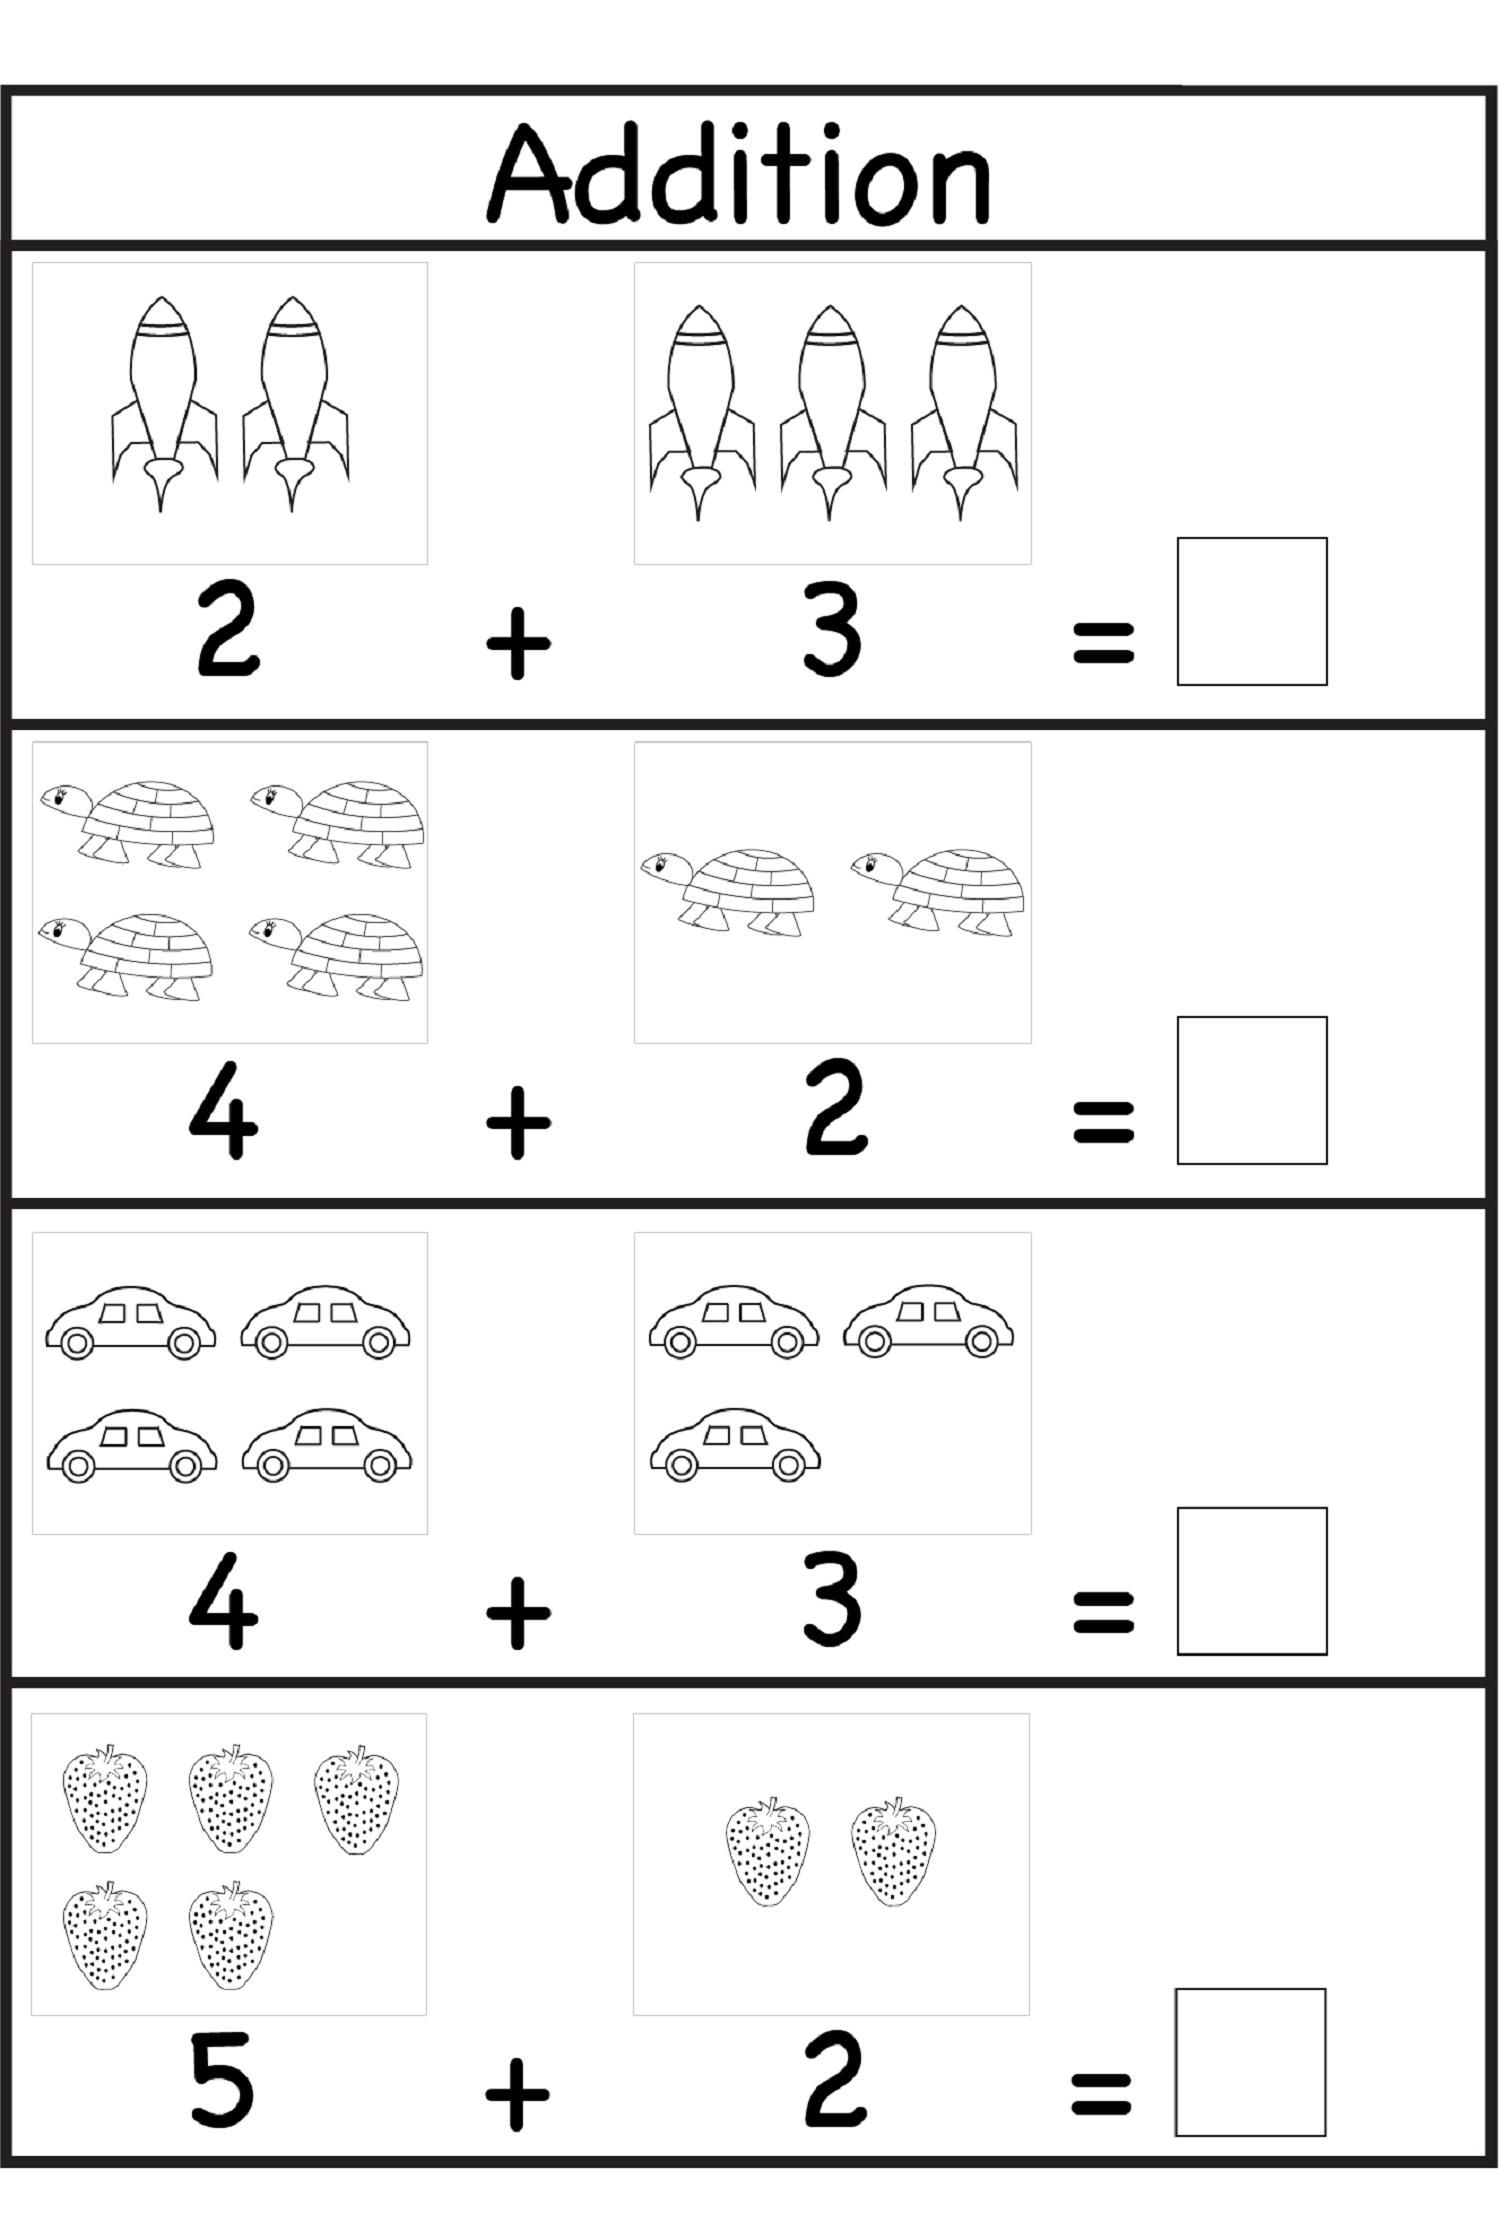 Printable Worksheets For Grade 1 Pangngalan In 2020 Kindergarten Addition Worksheets Kindergarten Math Worksheets Free Kindergarten Math Worksheets Addition